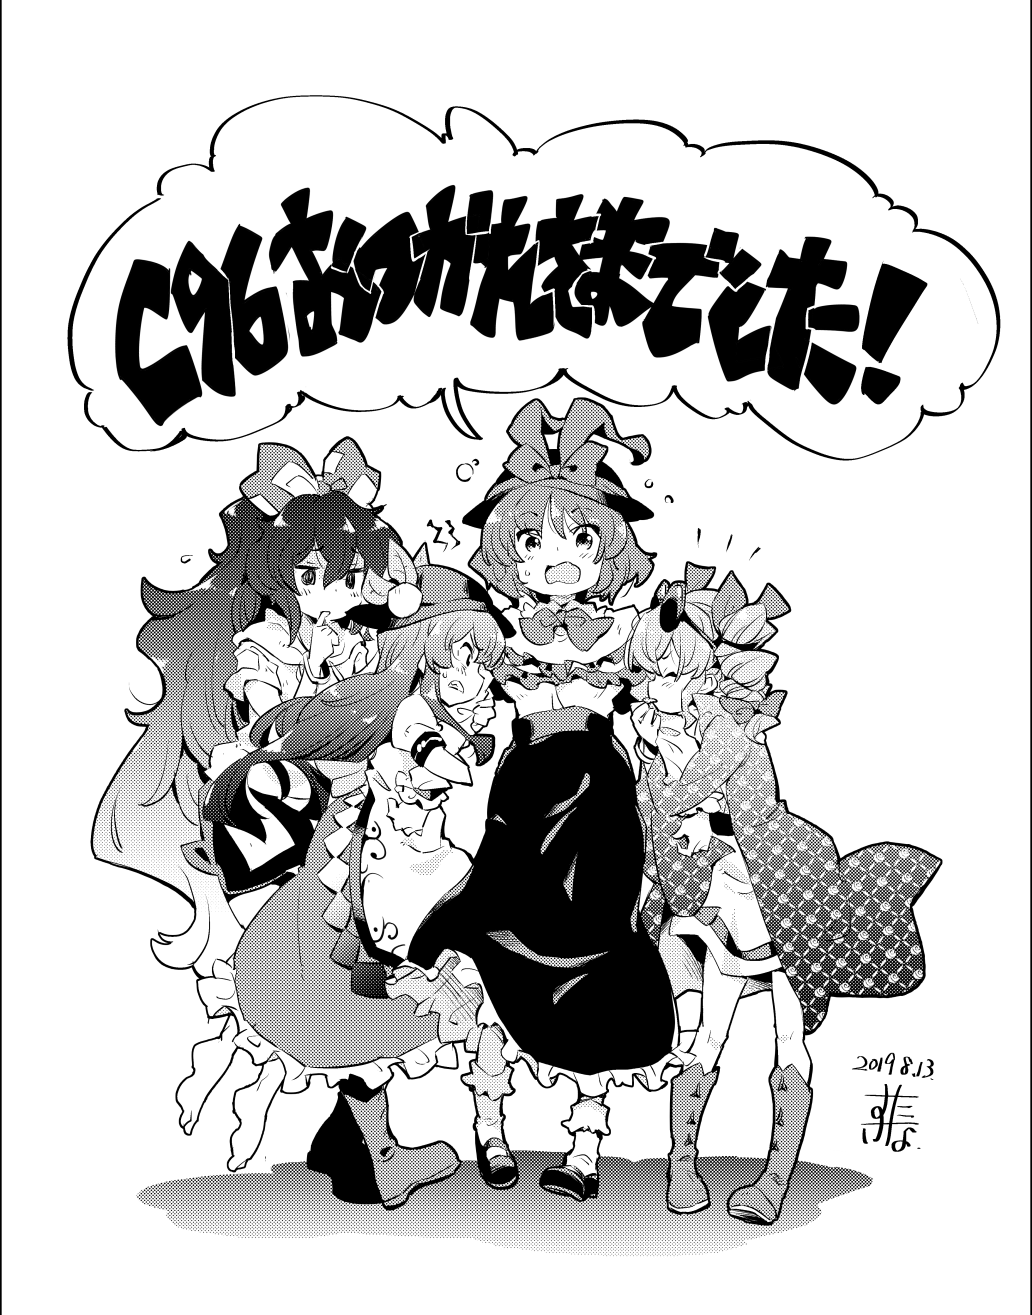 4girls apron arm_grab barefoot black_skirt blush bobby_socks boots bow clenched_teeth closed_eyes commentary_request dated drill_hair floating food fruit girl_sandwich greyscale hair_bow hand_up hat hat_bow highres hinanawi_tenshi jacket long_hair long_sleeves looking_at_another monochrome multiple_girls nagae_iku open_mouth peach sandwiched shirt shoes short_hair short_sleeves signature simple_background skirt socks speech_bubble sweat tanasuke teeth touhou translation_request twin_drills unmoving_pattern very_long_hair white_background white_legwear white_shirt yorigami_jo'on yorigami_shion